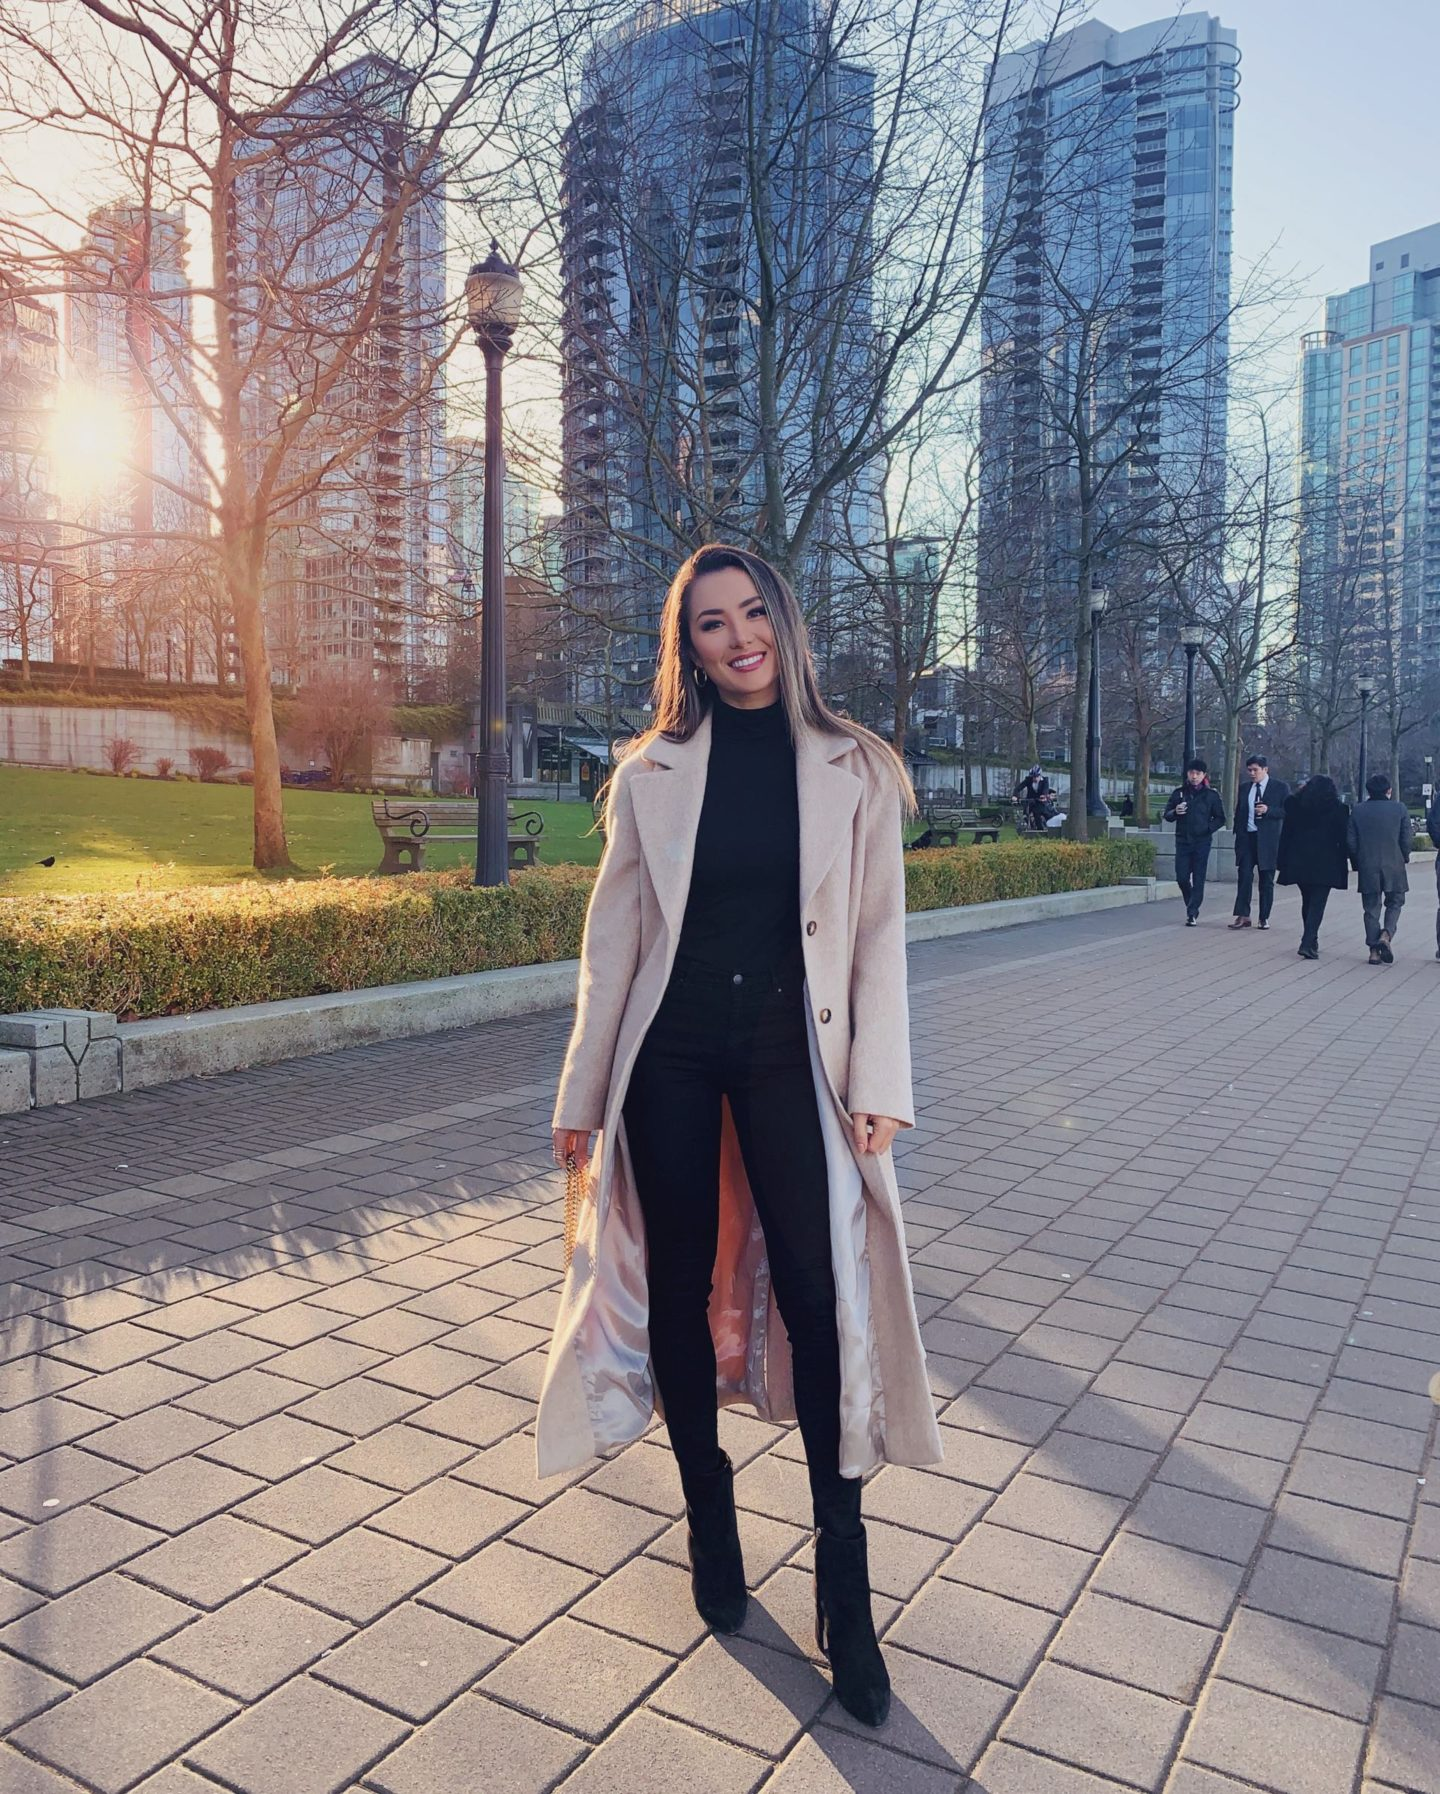 vancouver, travel, winter look, style, hapa, tan coat